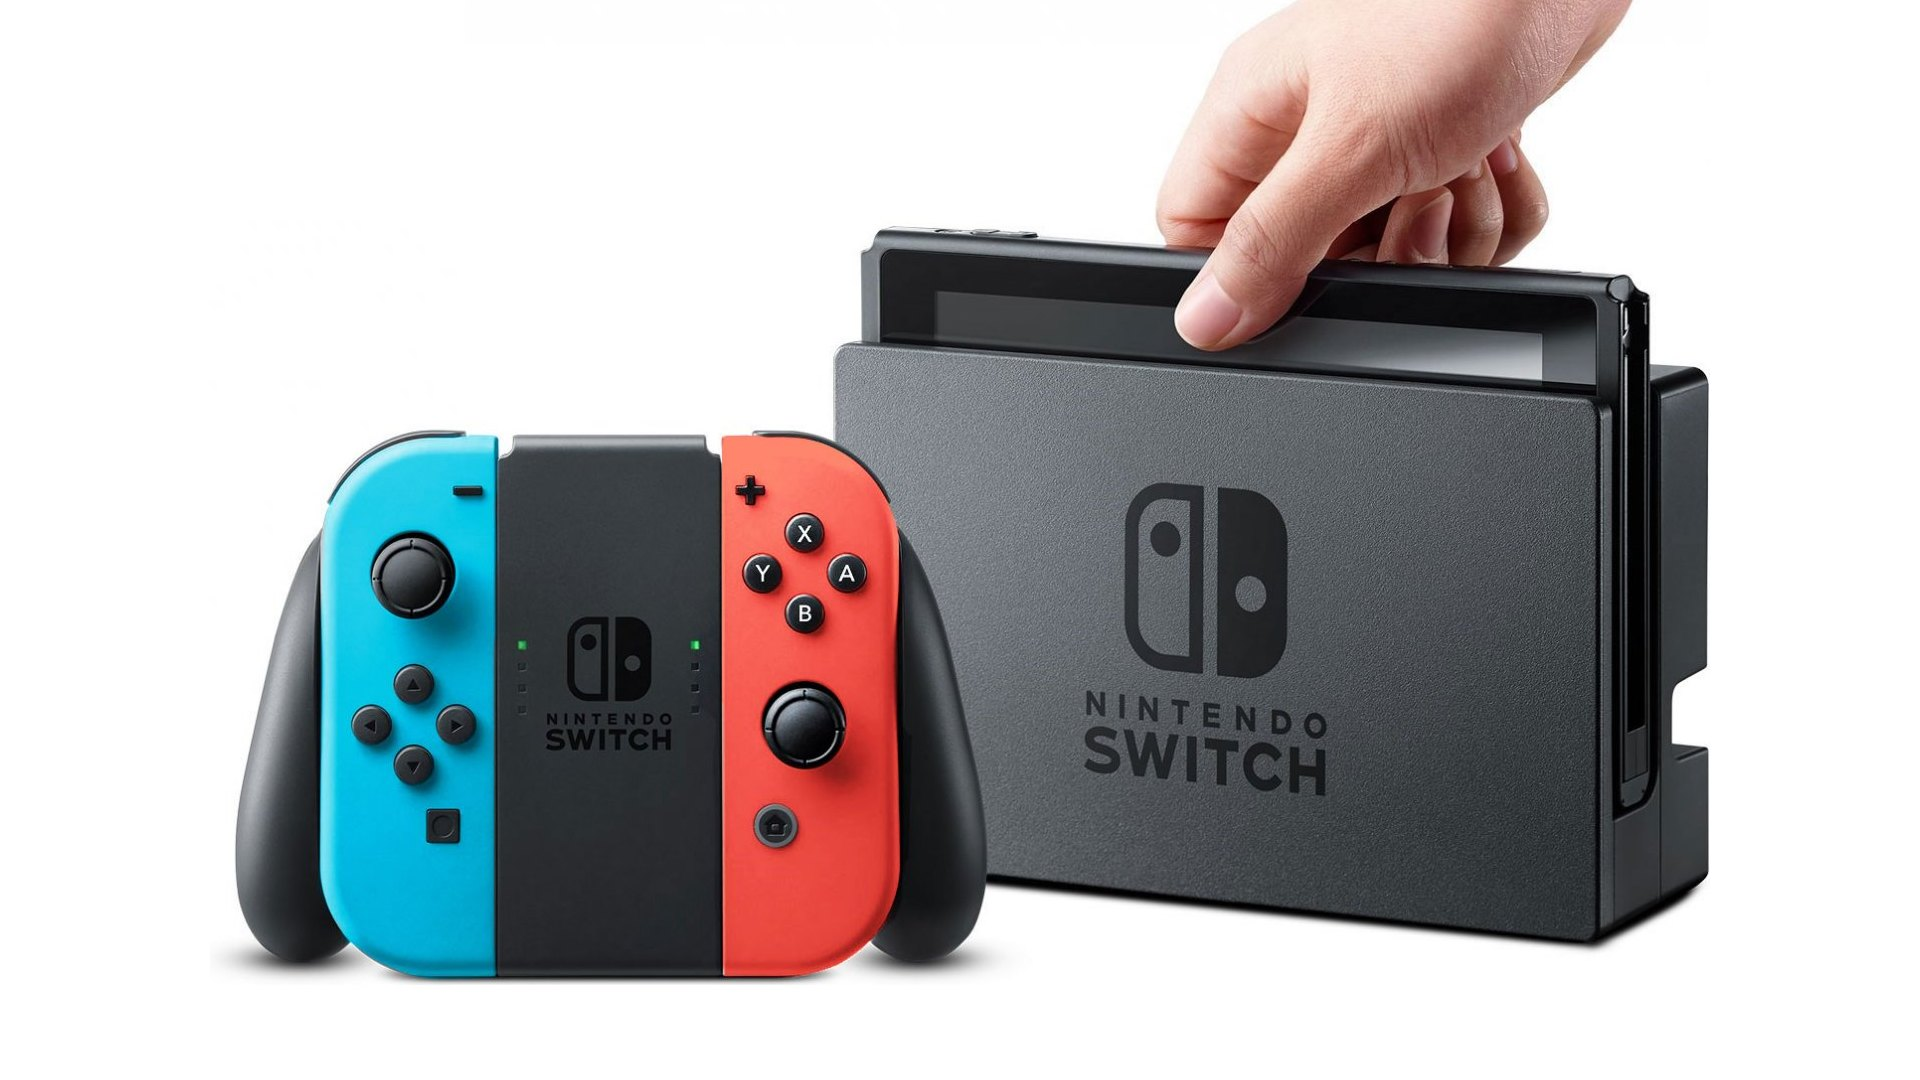 Tencent cleared to distribute the Nintendo Switch in China